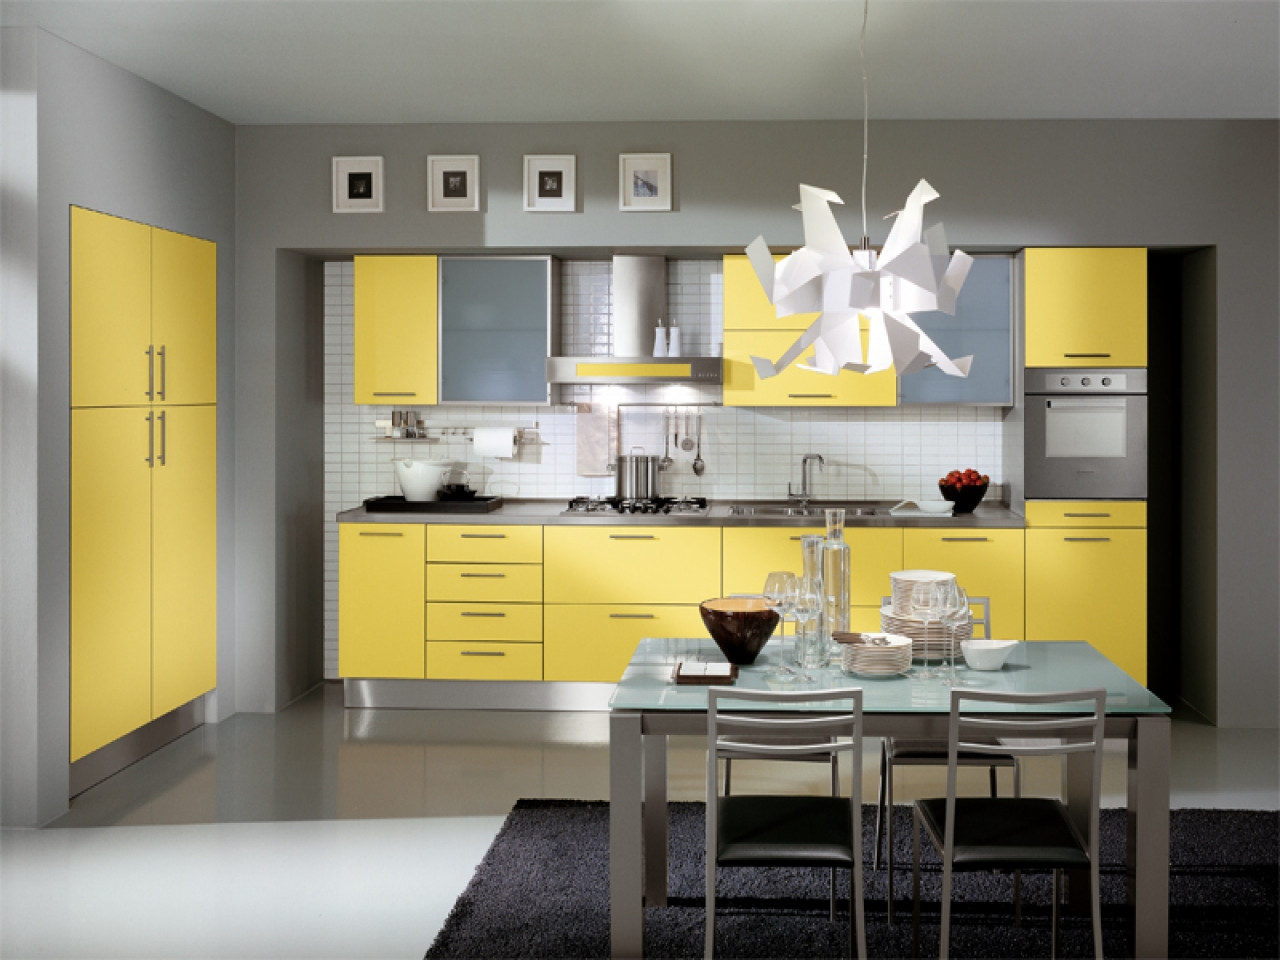 Best ideas about Yellow Kitchen Decor . Save or Pin Kitchen decorating ideas with red accents grey and yellow Now.